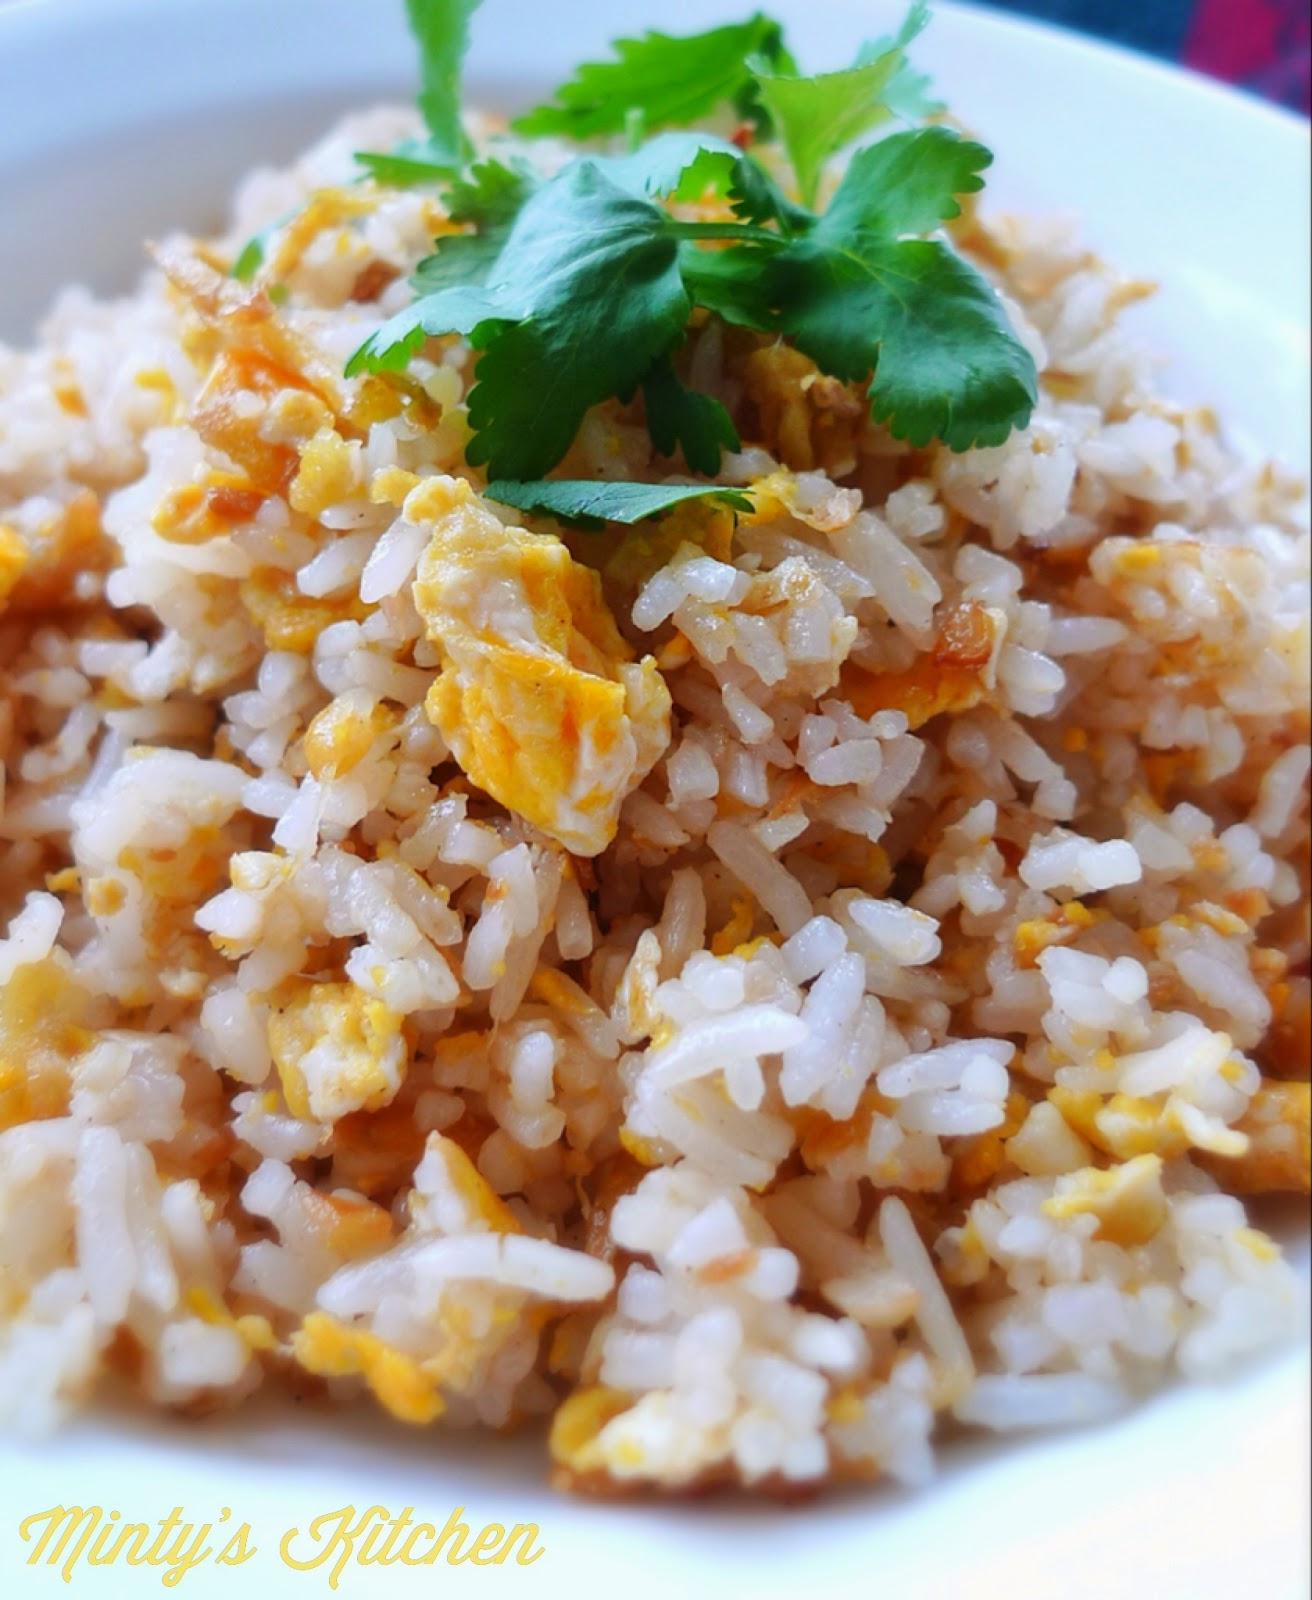 Minty's Kitchen: Ginger Fried Rice